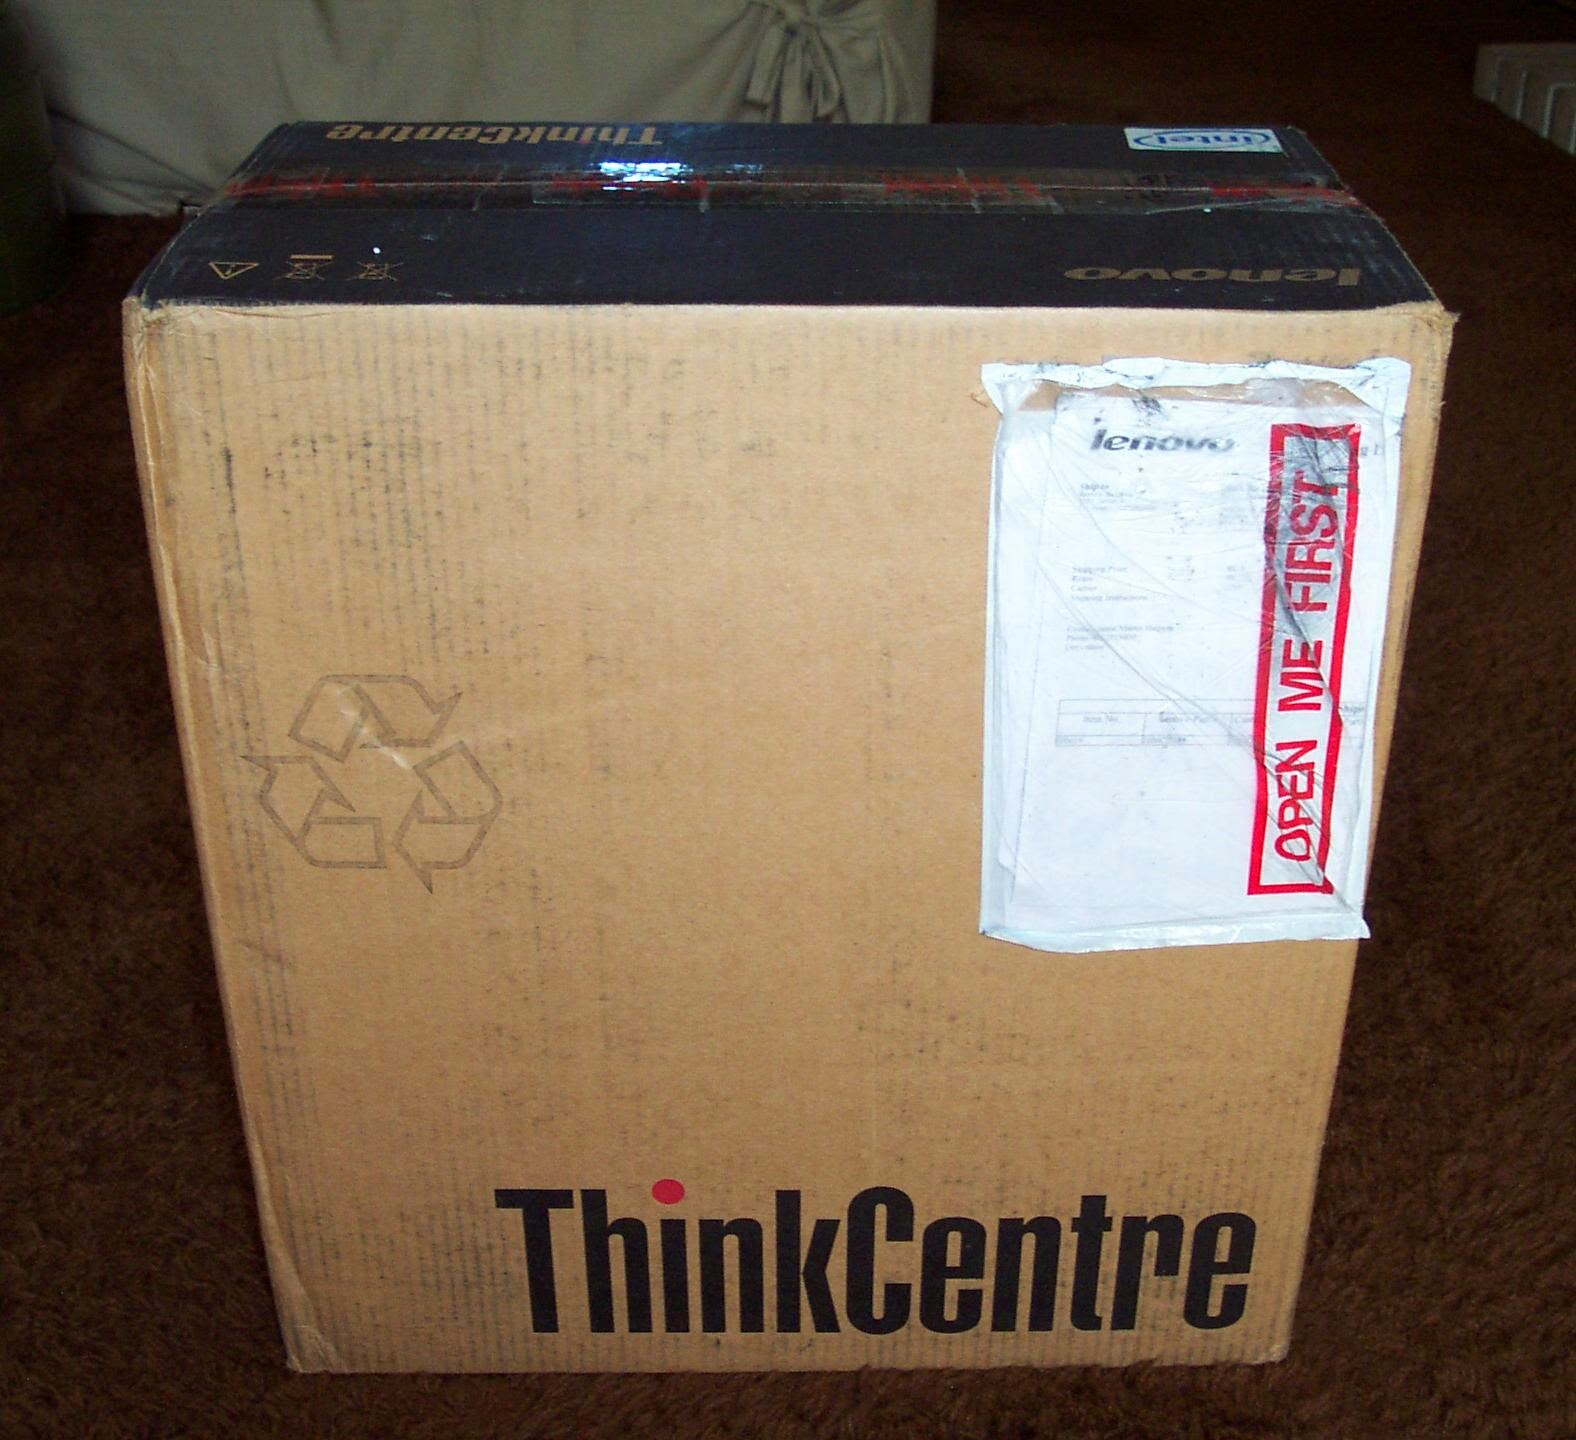 More Red Ink: Lenovo ThinkCentre M73 Mini Tower